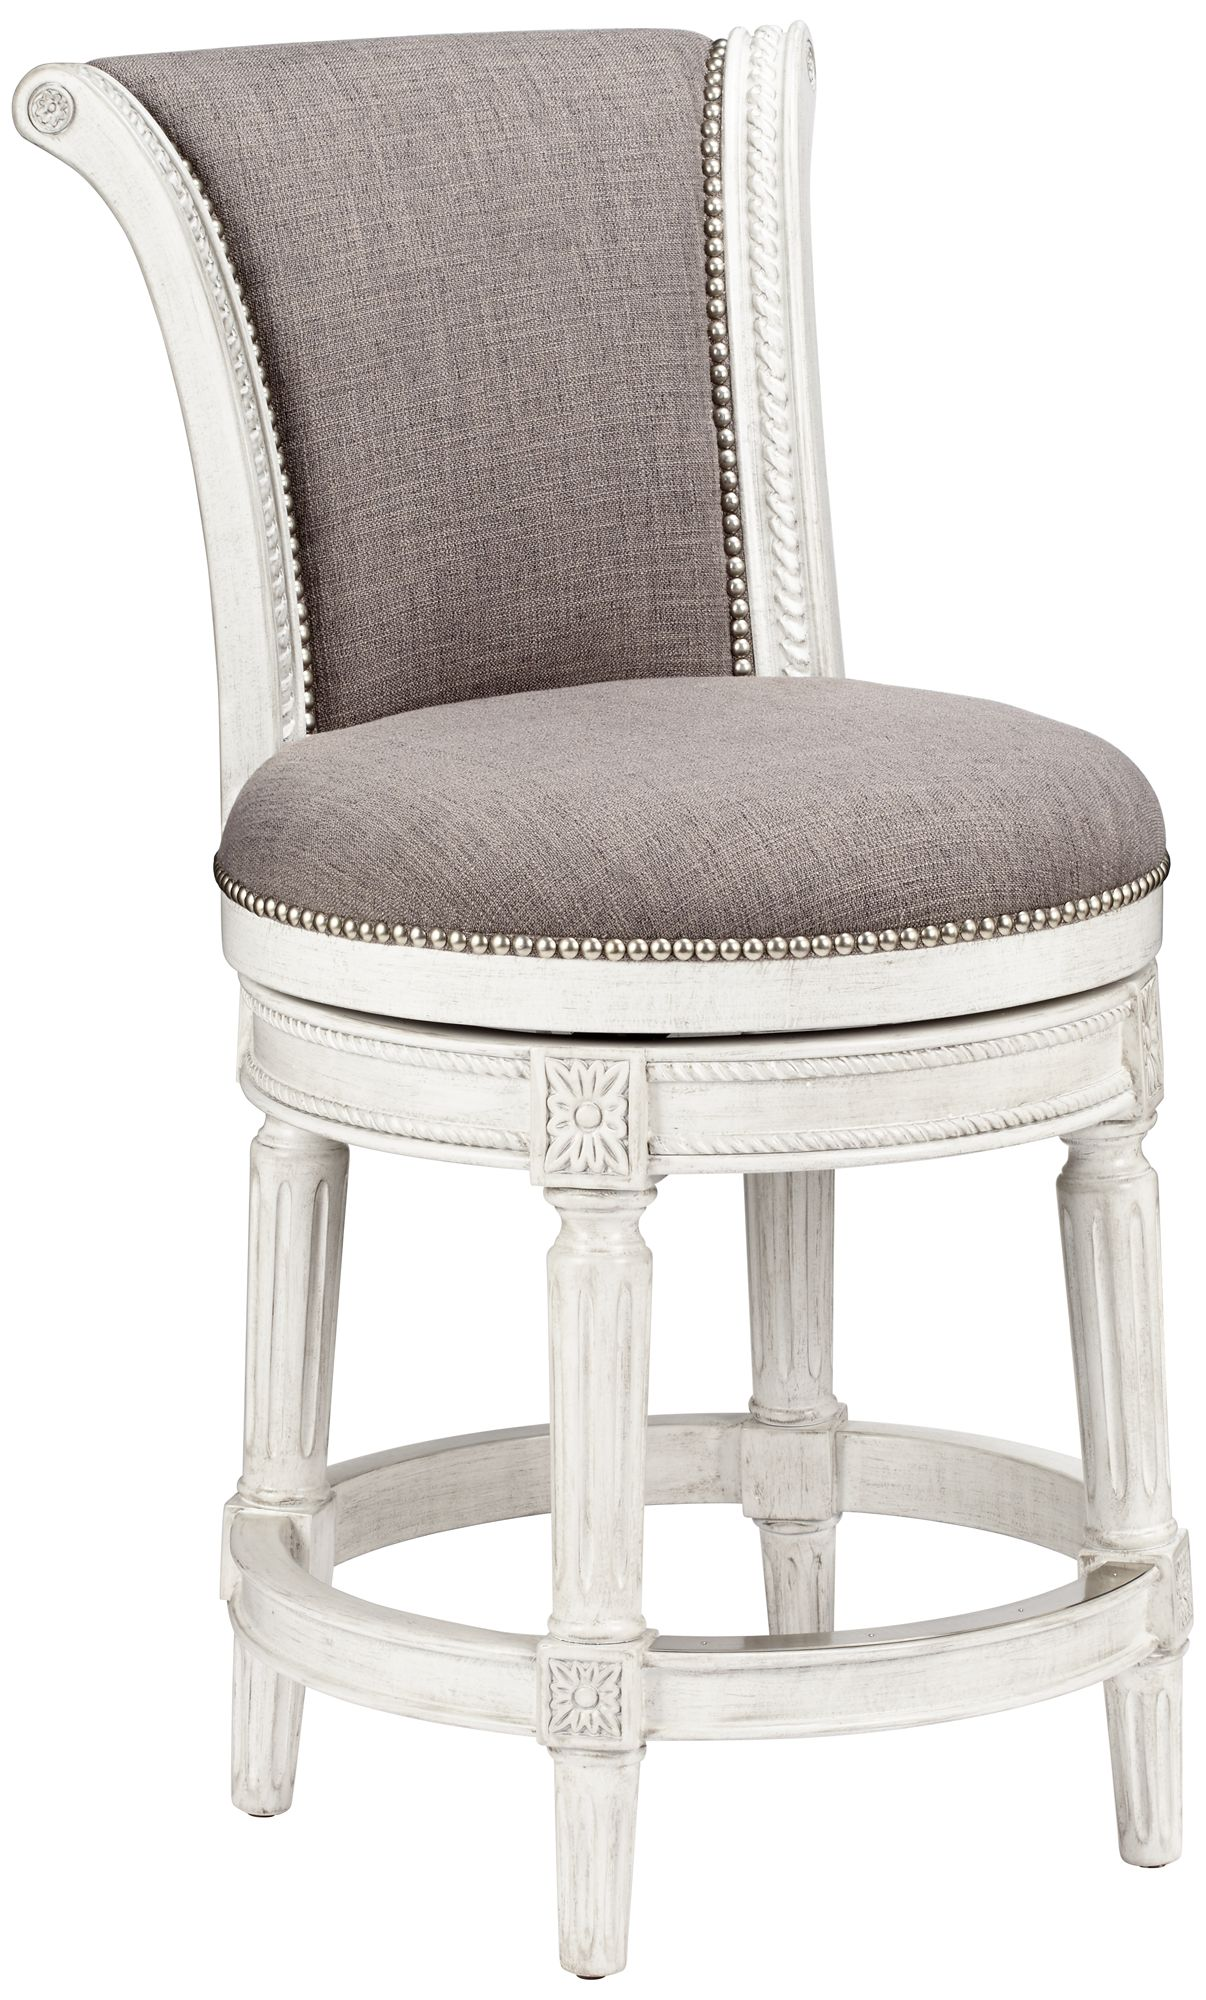 Chloe 24  Pewter Fabric Scroll-Back Swivel Counter Stool  sc 1 st  L&s Plus & Chloe 24